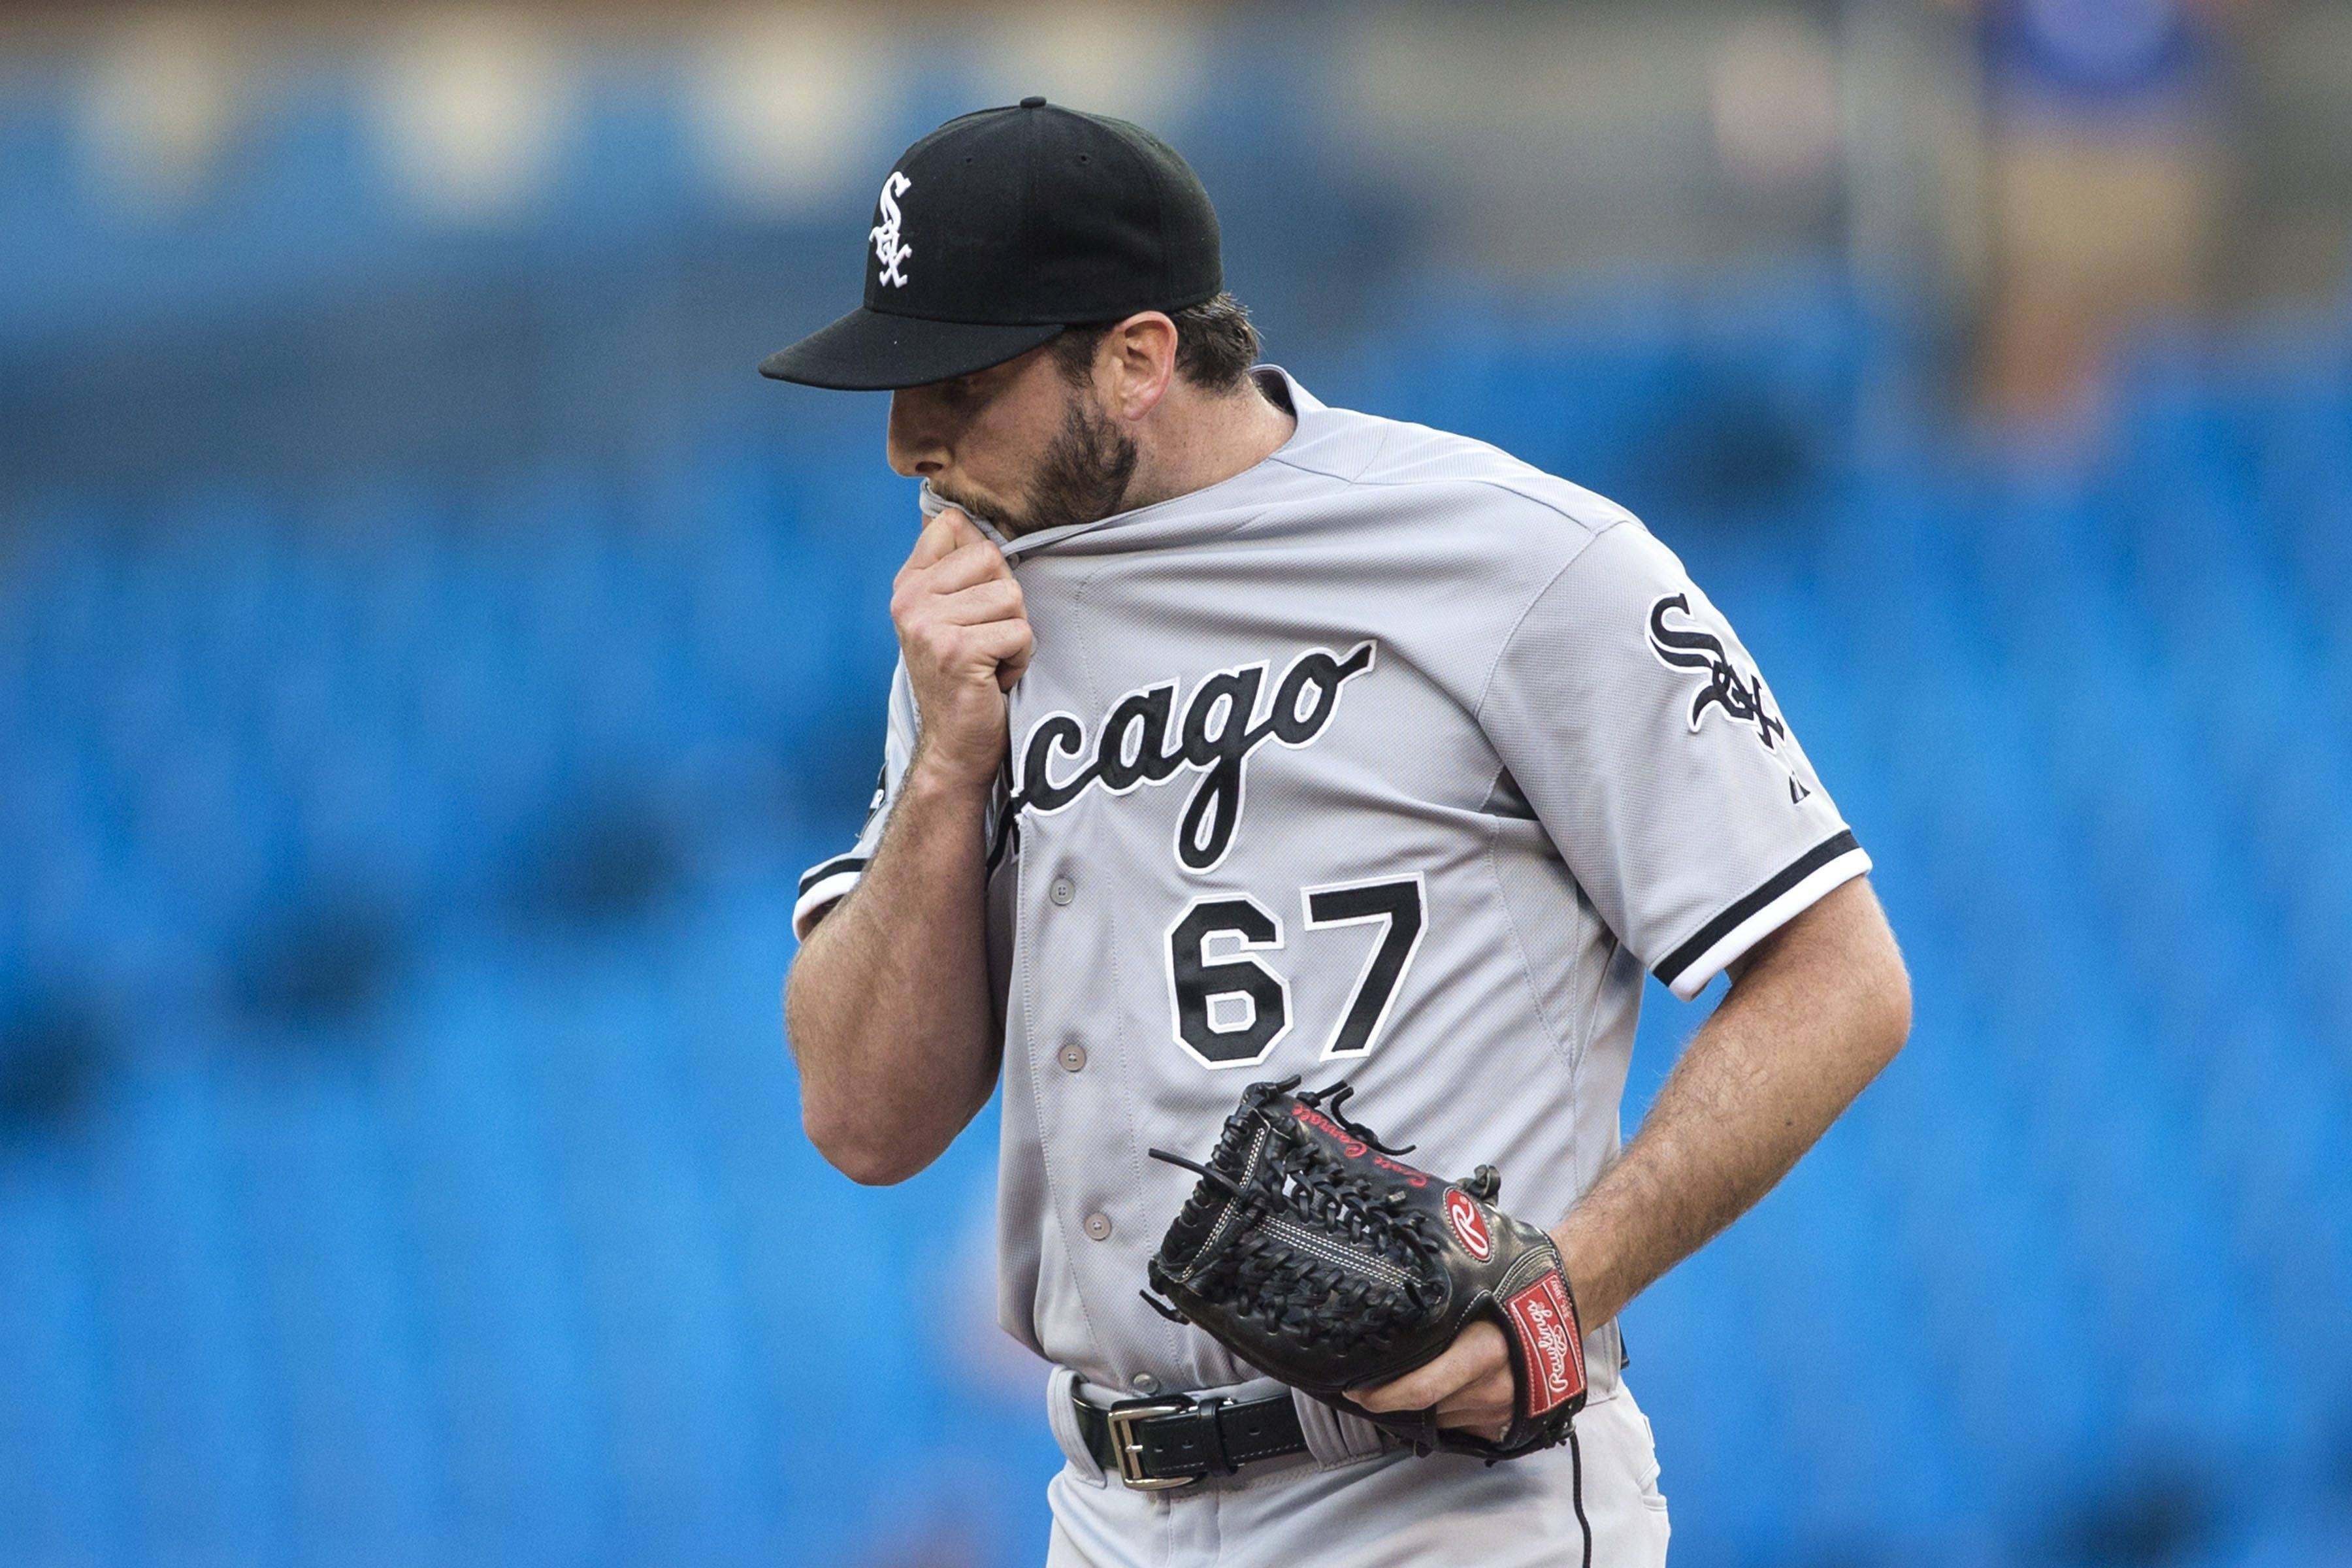 Chicago White Sox starting pitcher Scott Carroll reacts as he works against Toronto Blue Jays during first inning american league baseball action in Toronto on Thursday June 26 , 2014. (AP Photo/The Canadian Press, Chris Young)